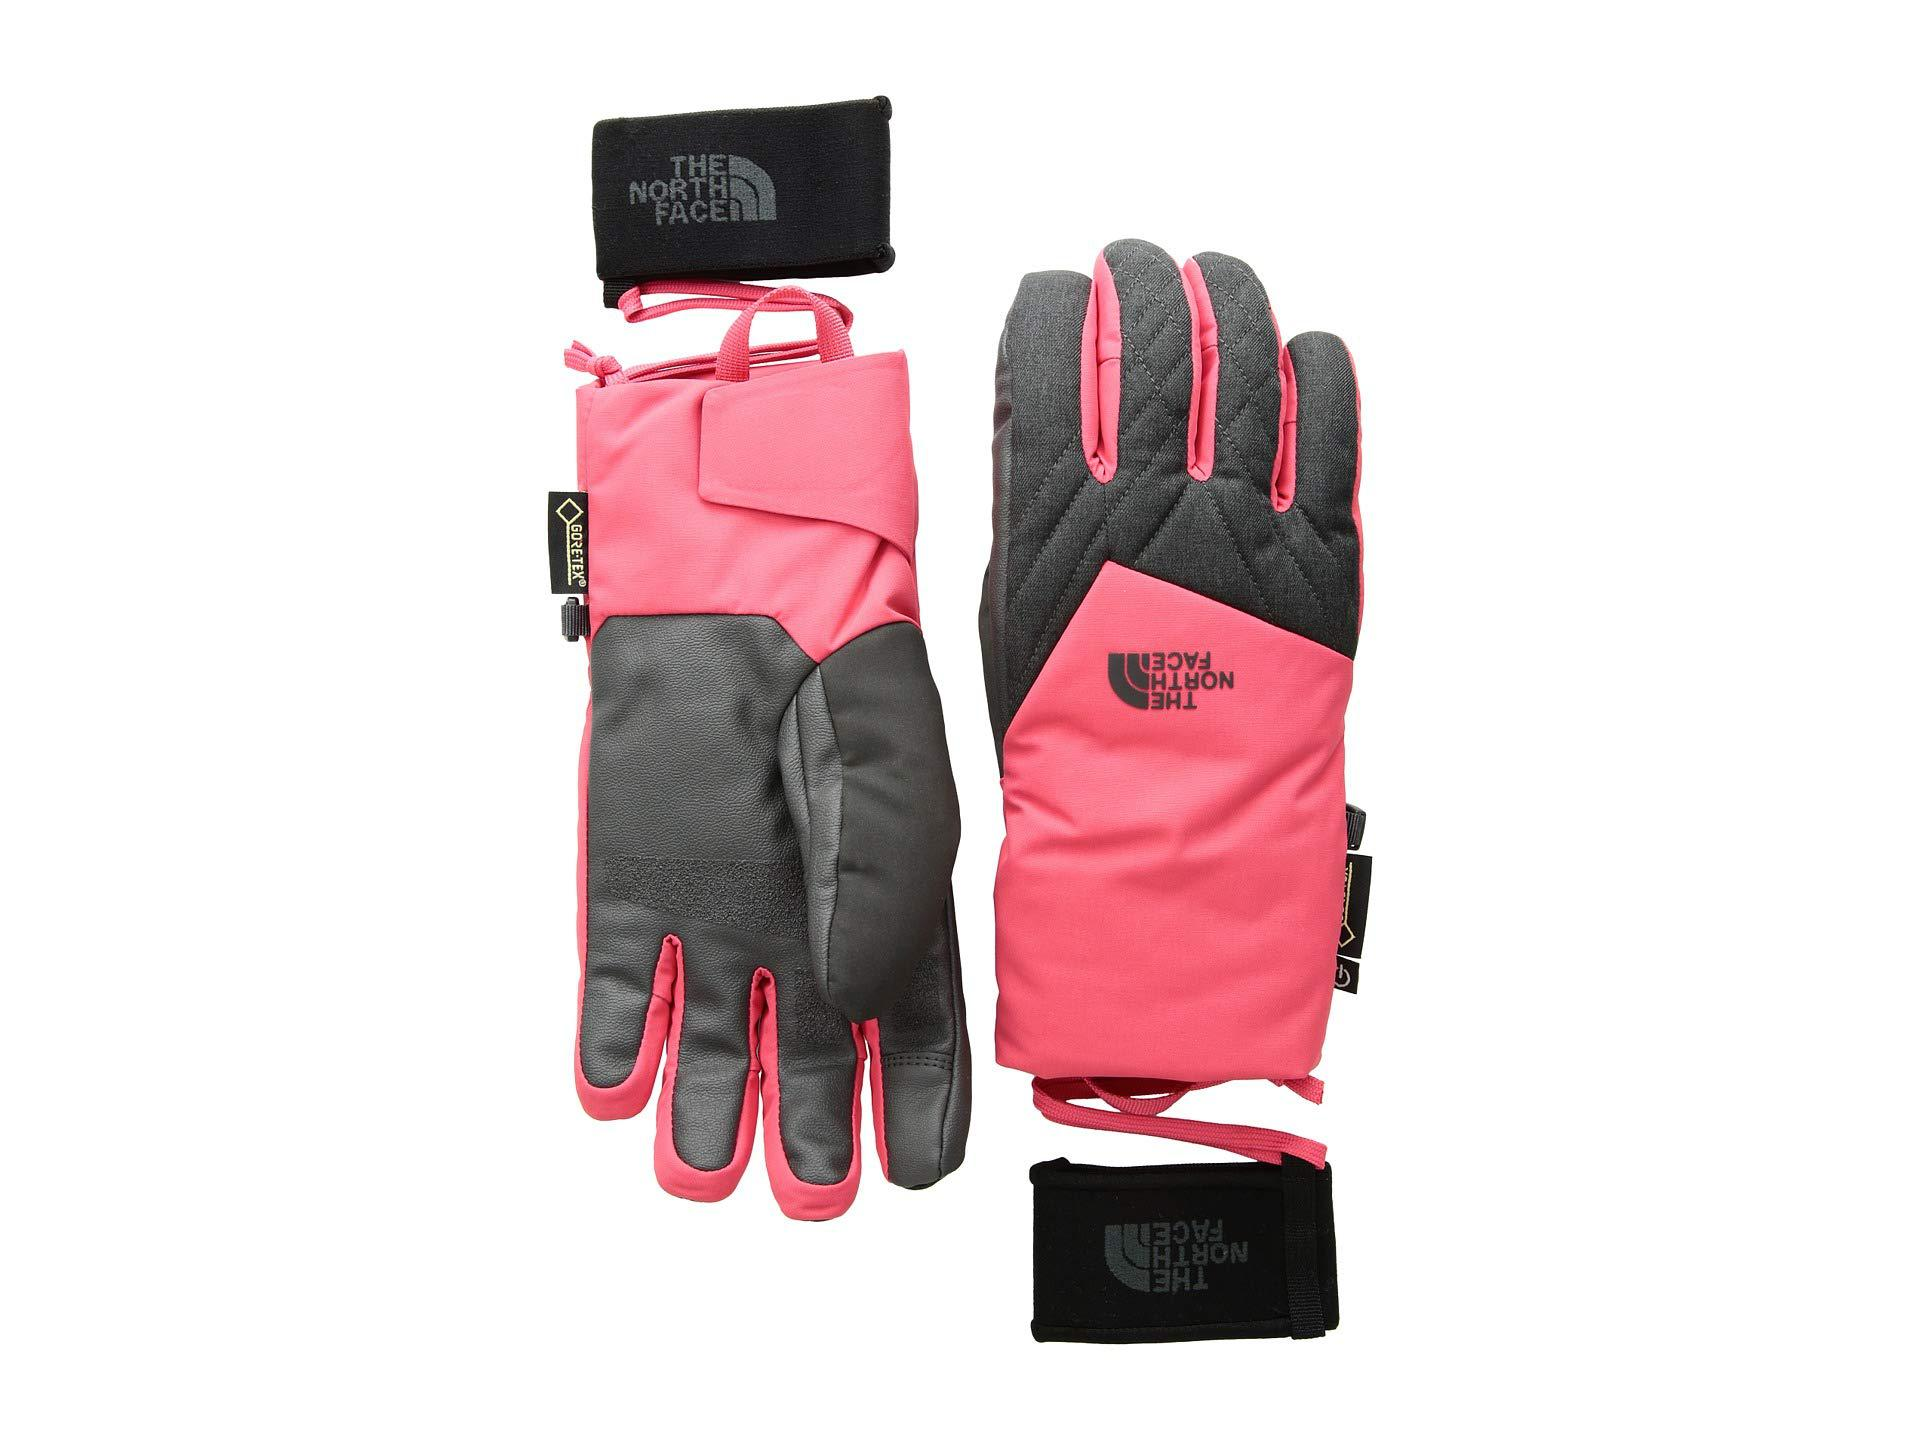 94f715490 Lyst - The North Face Montana Gore-tex(r) Sg Gloves (tnf Black) Gore ...